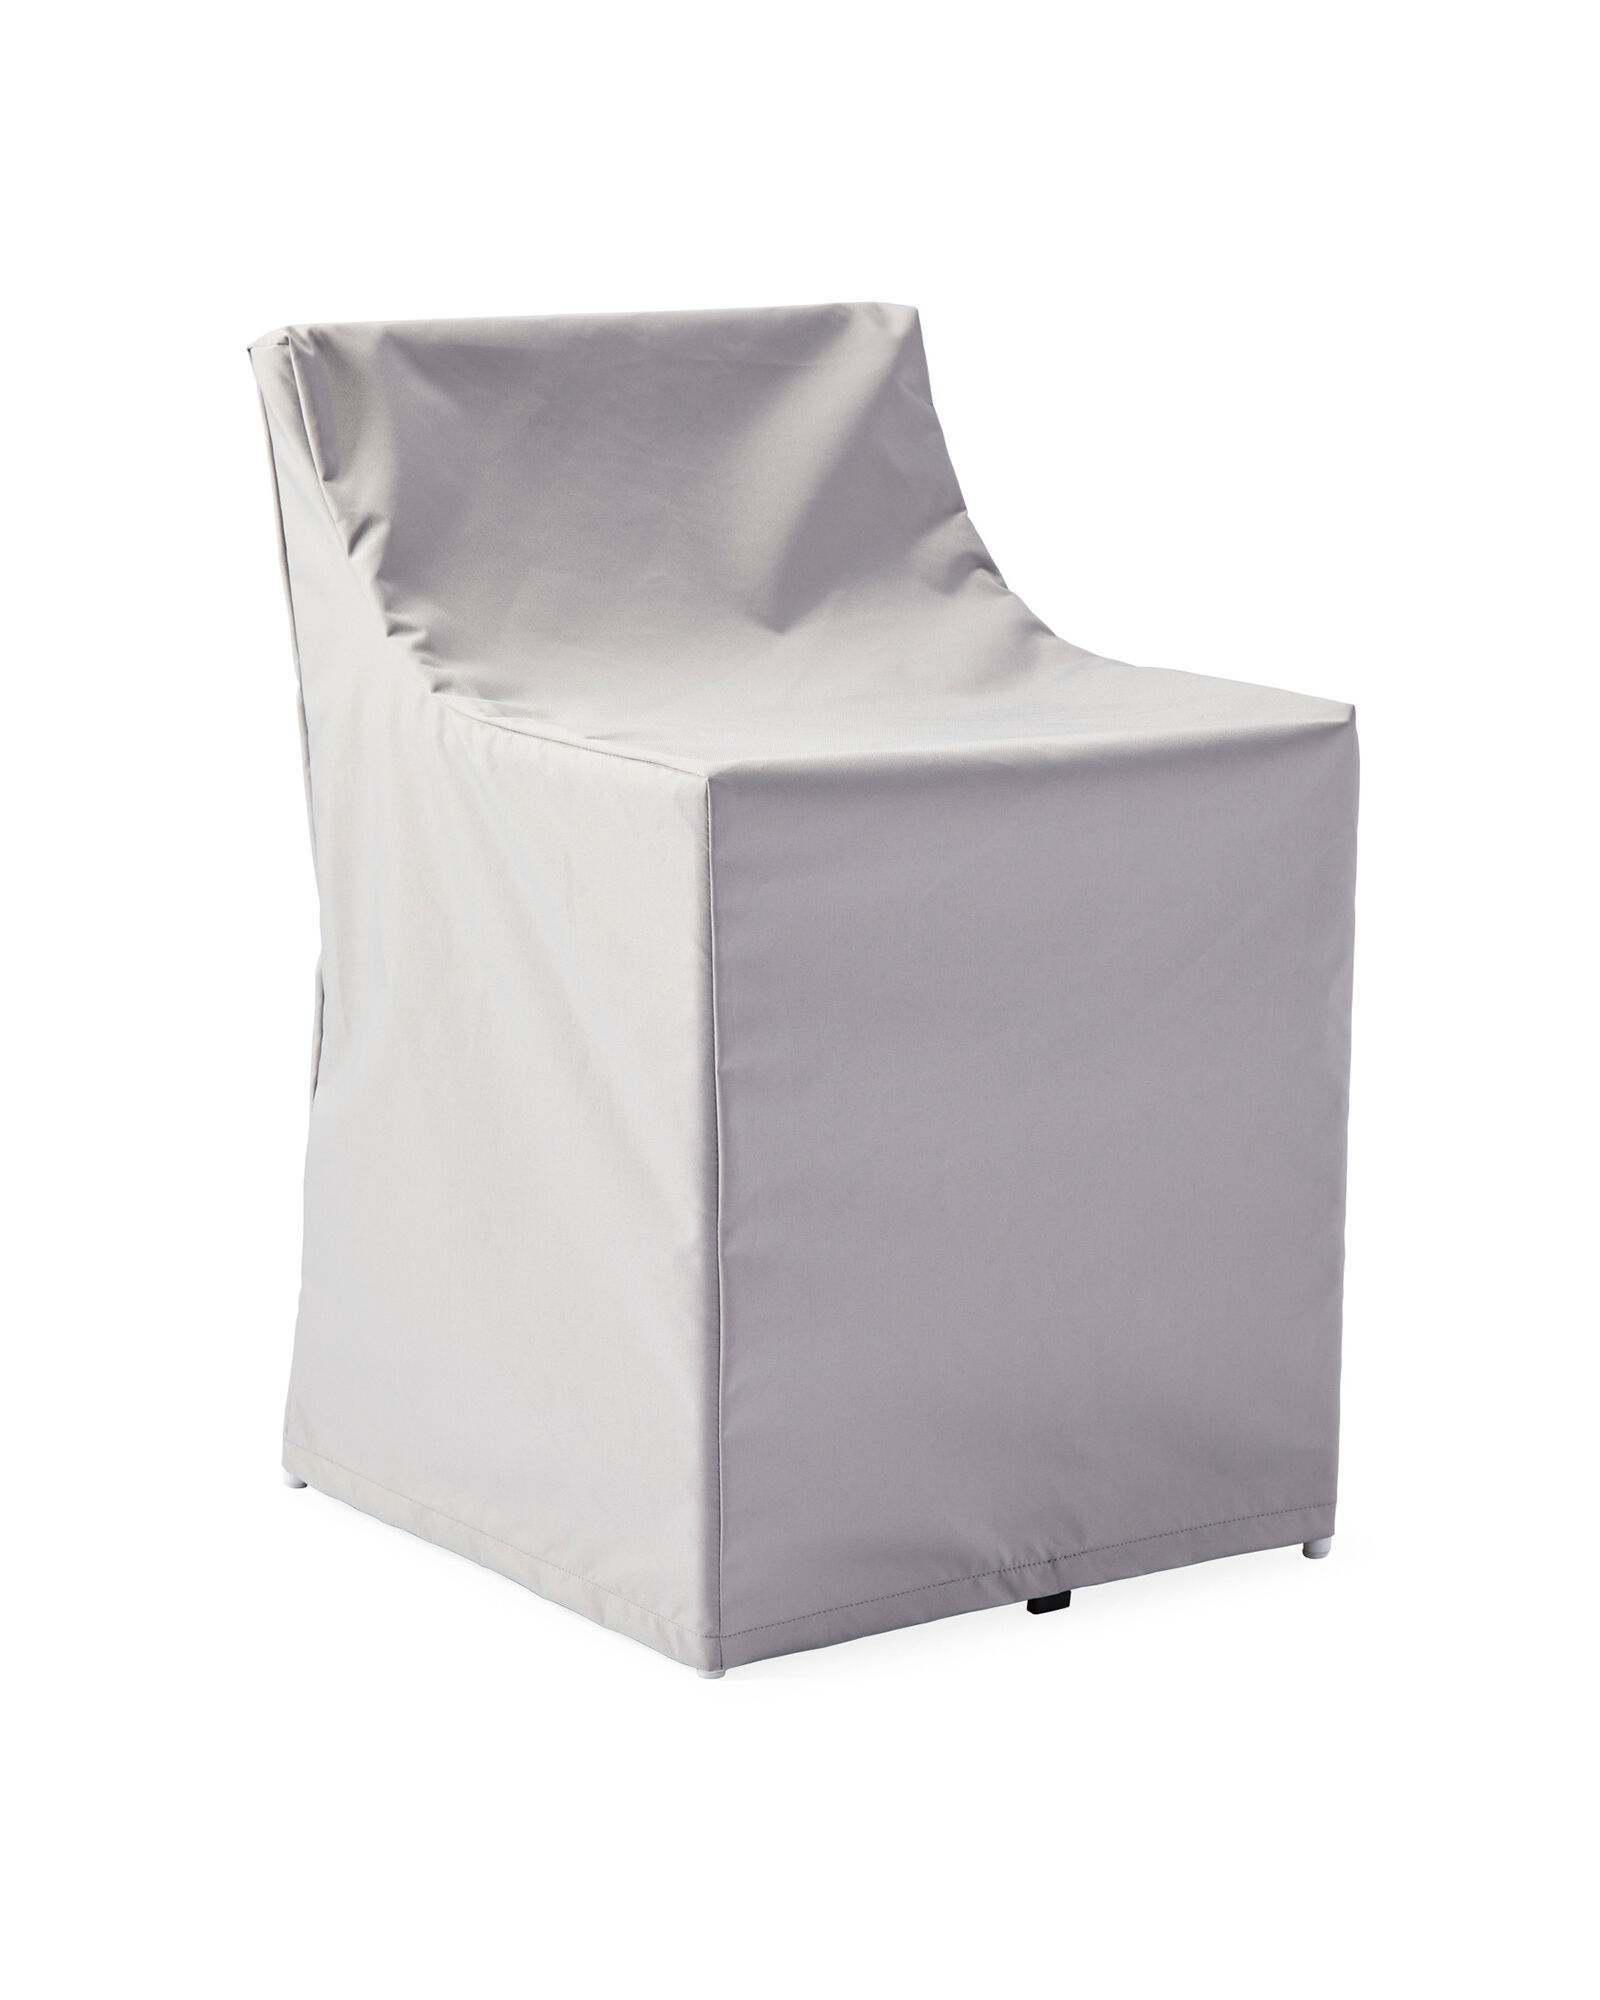 Protective Cover - Salt Creek Dining Chair,